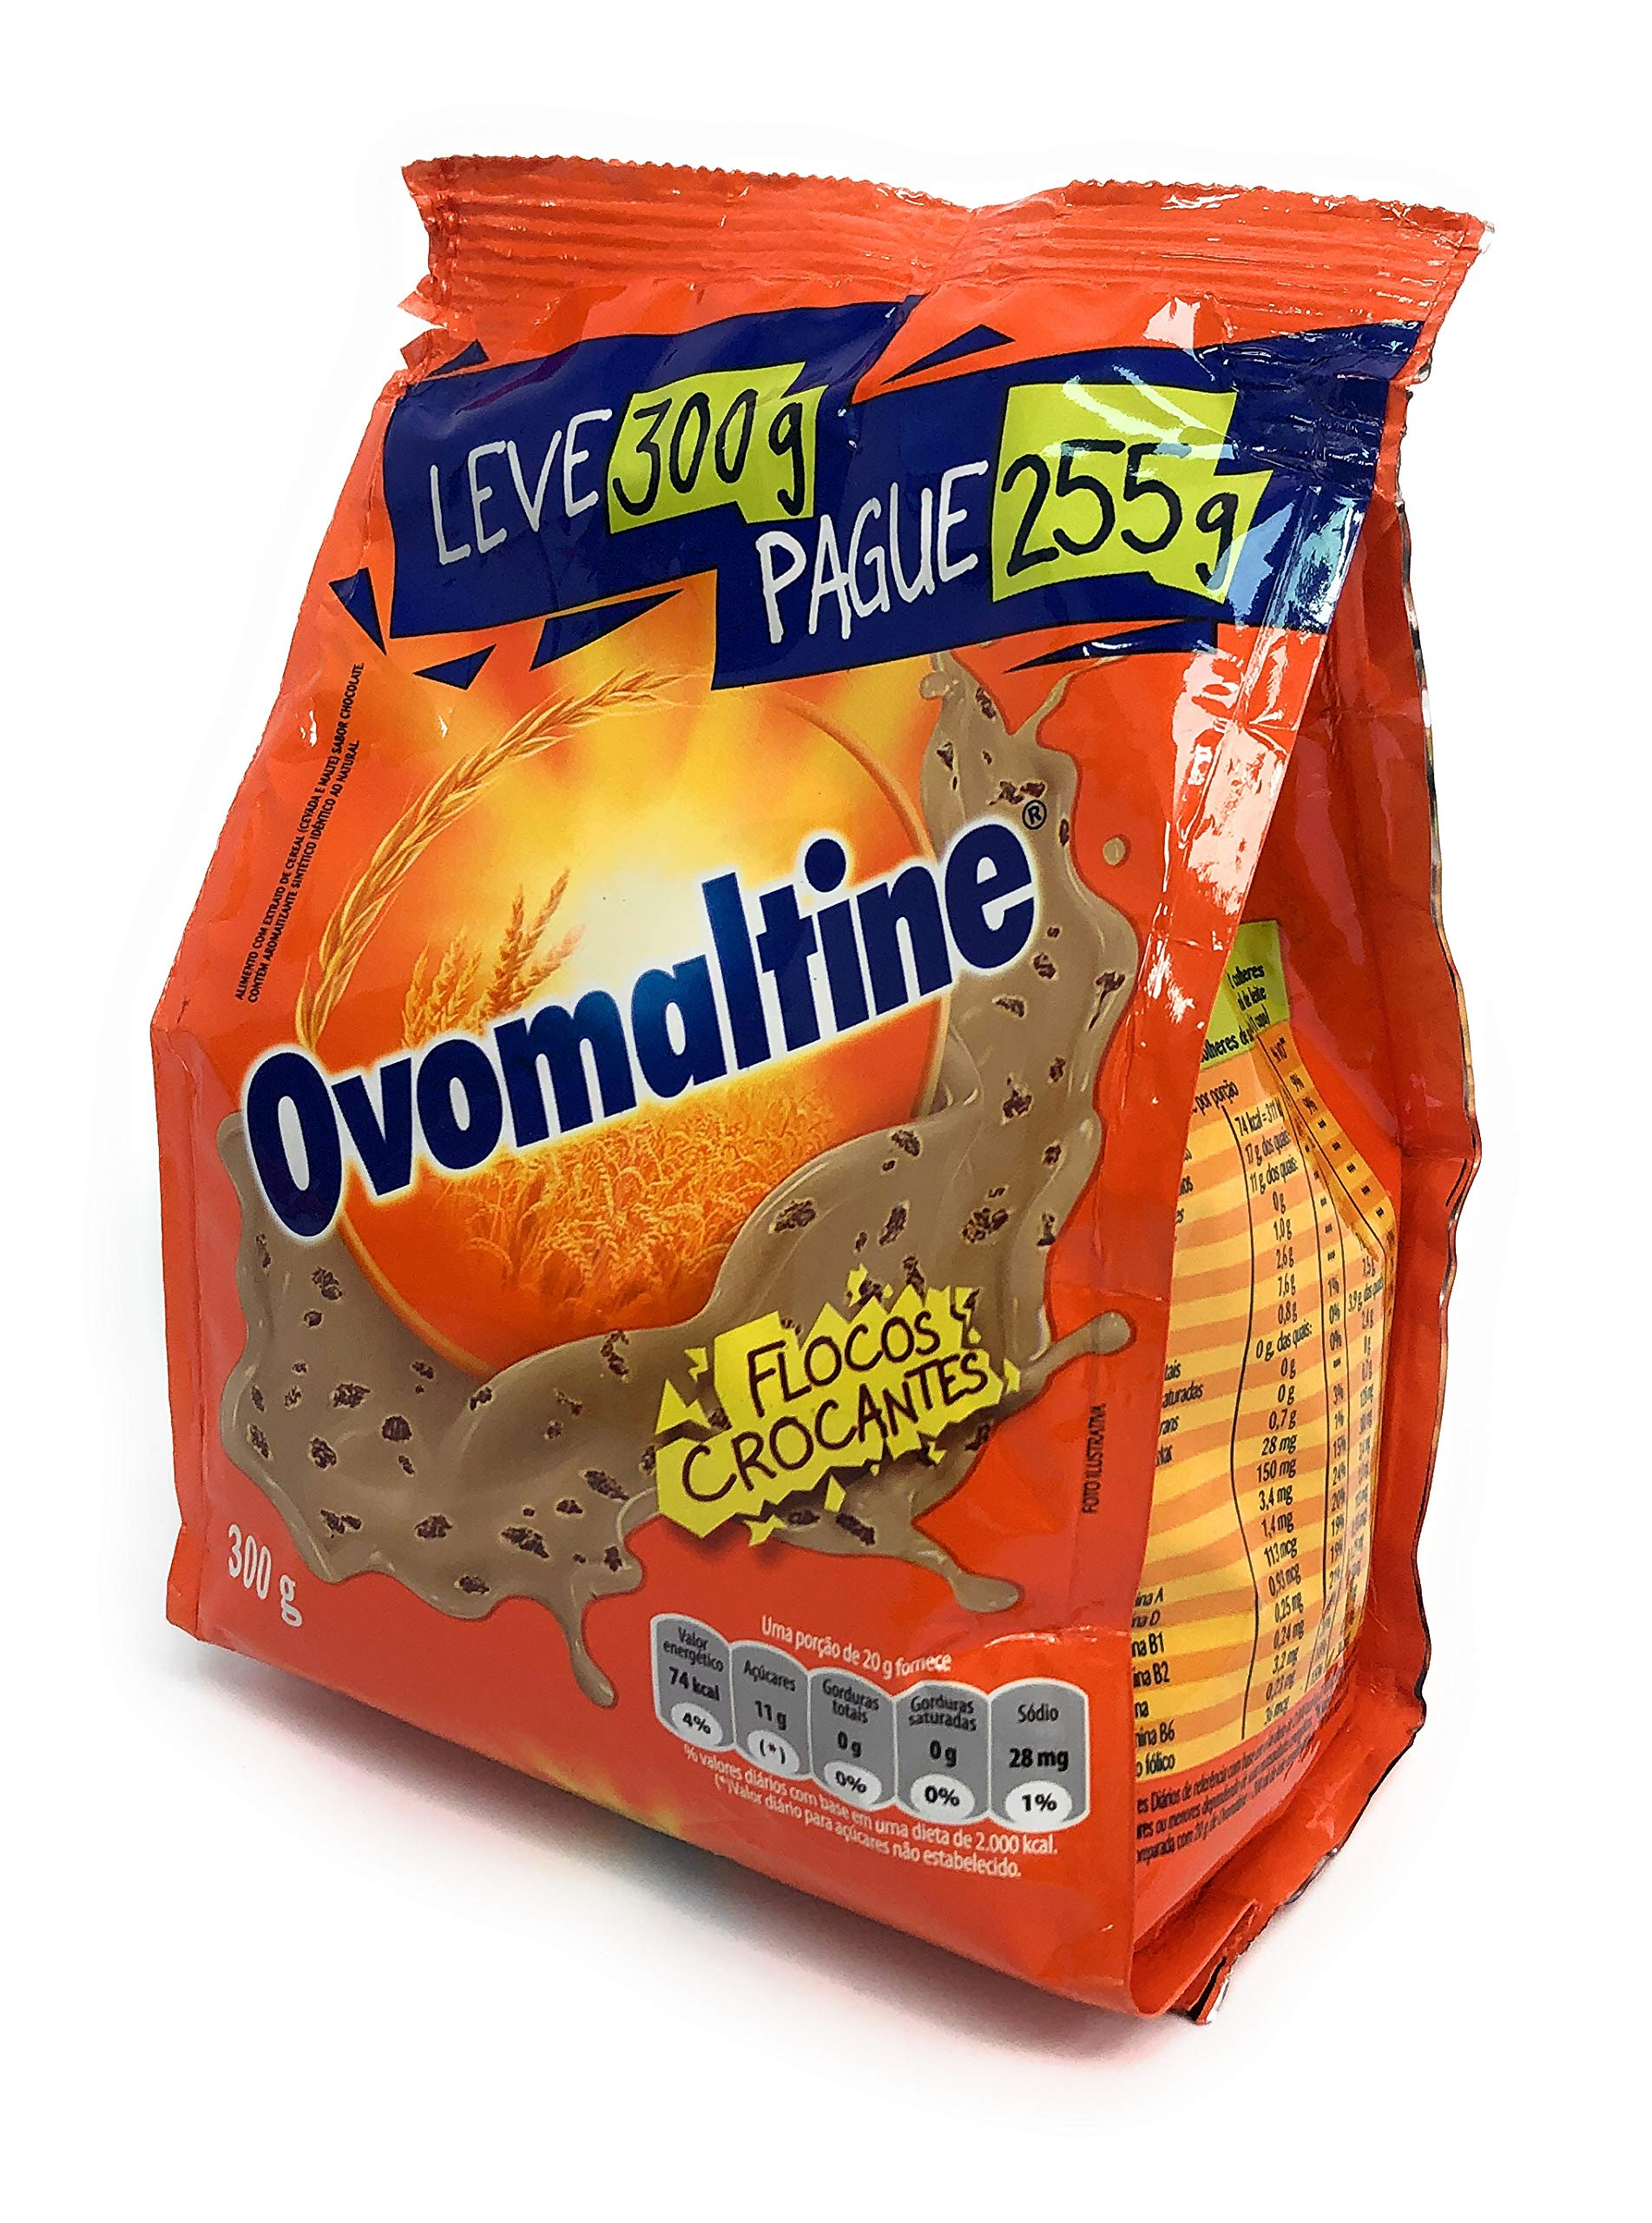 Ovomaltine - Malt Extract w/Chocolate - Beverage mix - Chocolate flakes - 10.58 oz.| Extrato e Malte Sabor Chocolate - Mistura para Bebidas - Achocolatado em Flocos - 300g